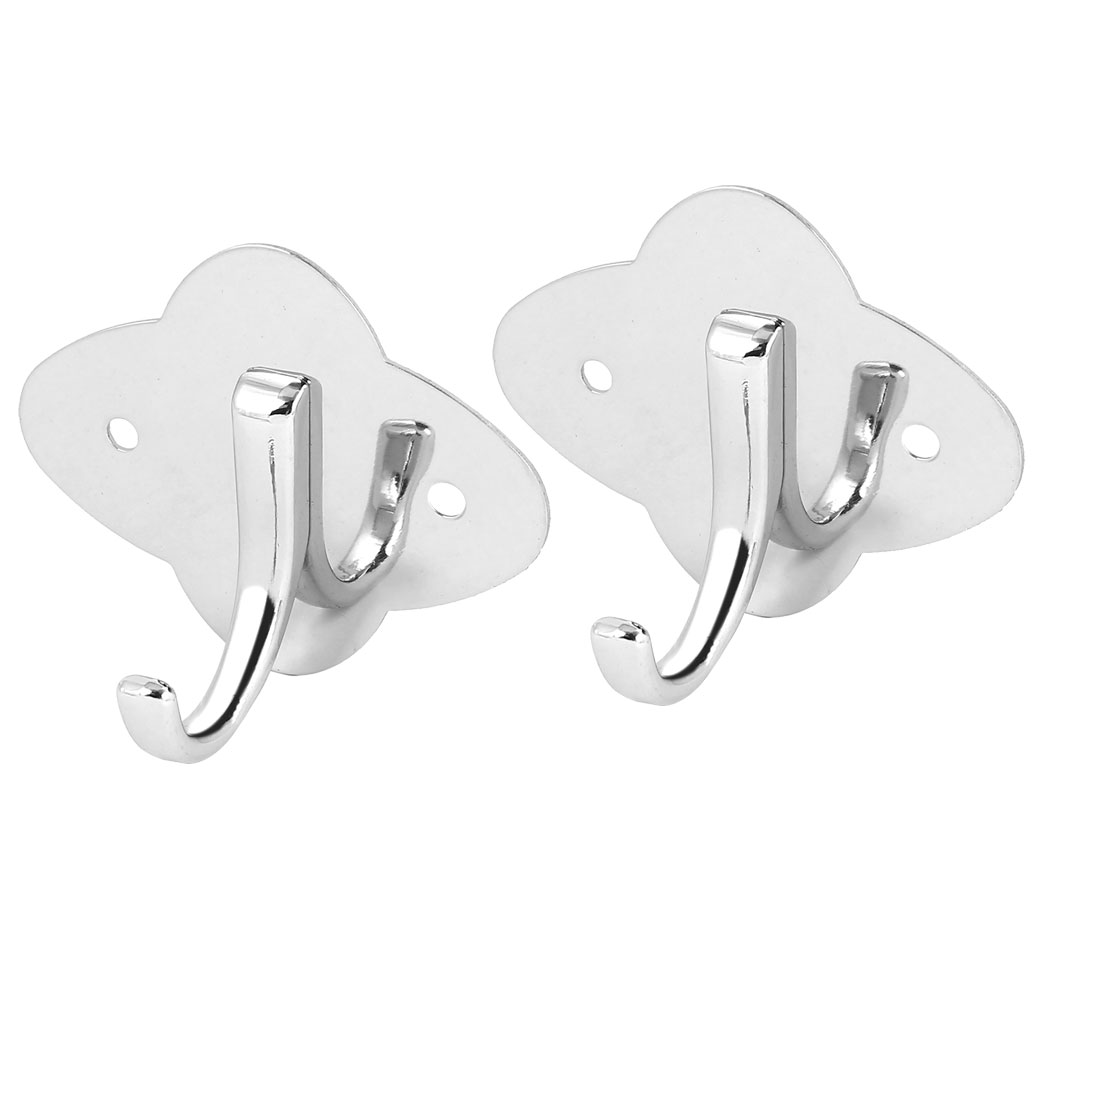 Bedroom Clothes Coat Single Hanger Stainless Steel Wall Mount Hanging Hook 2pcs